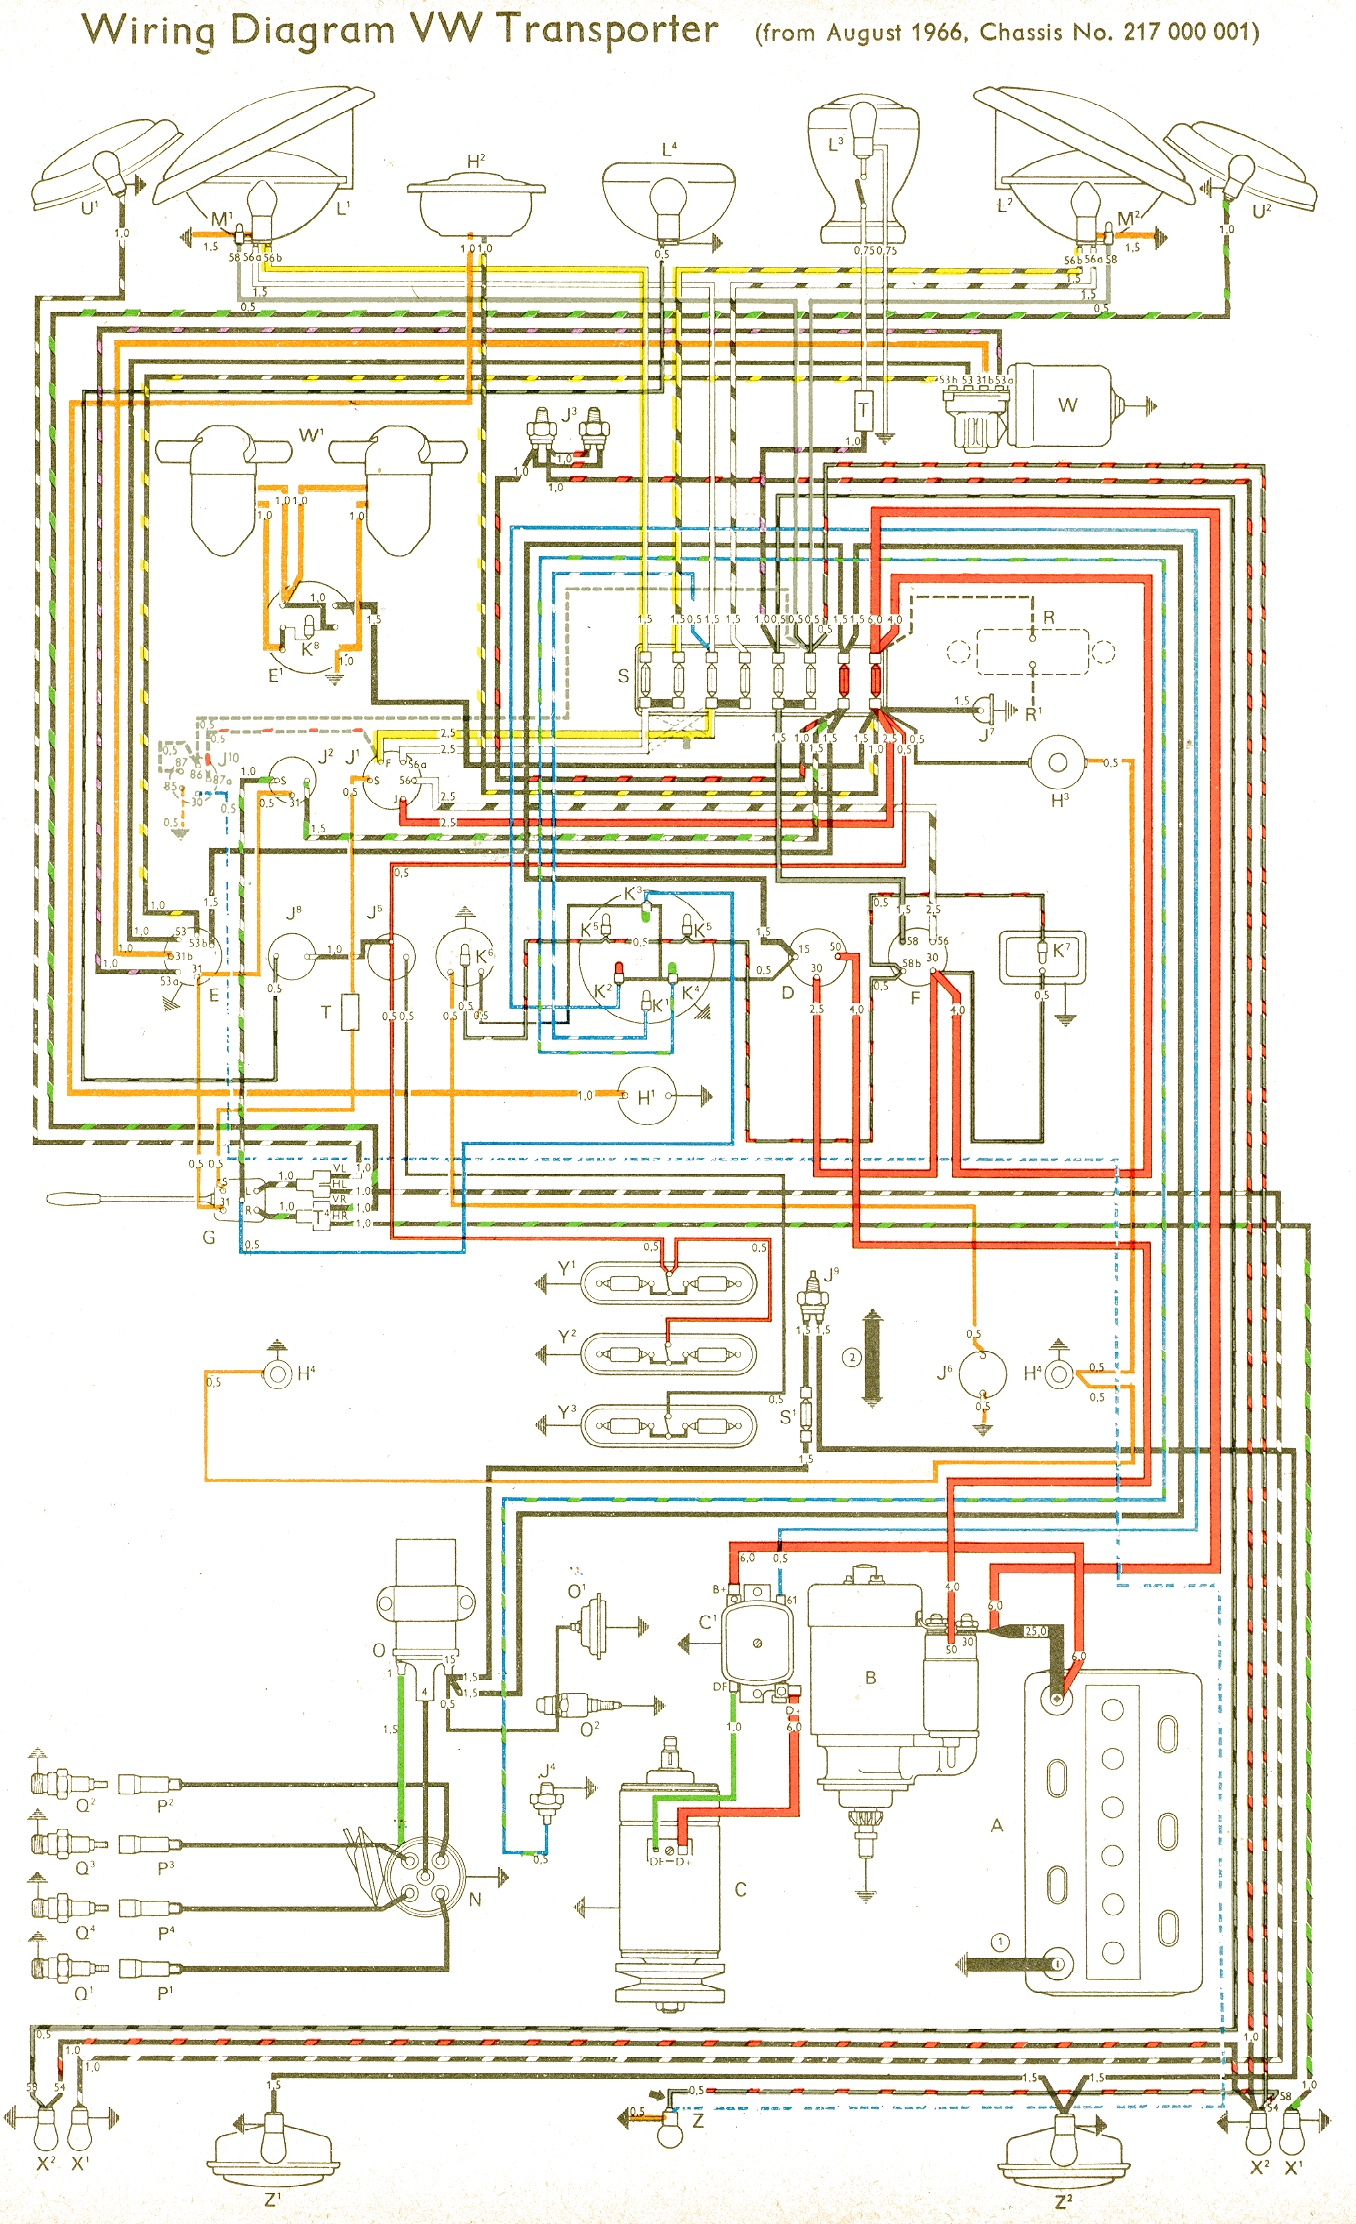 wiring diagram for 1964 vw bus electrical diagrams forum u2022 rh jimmellon co uk